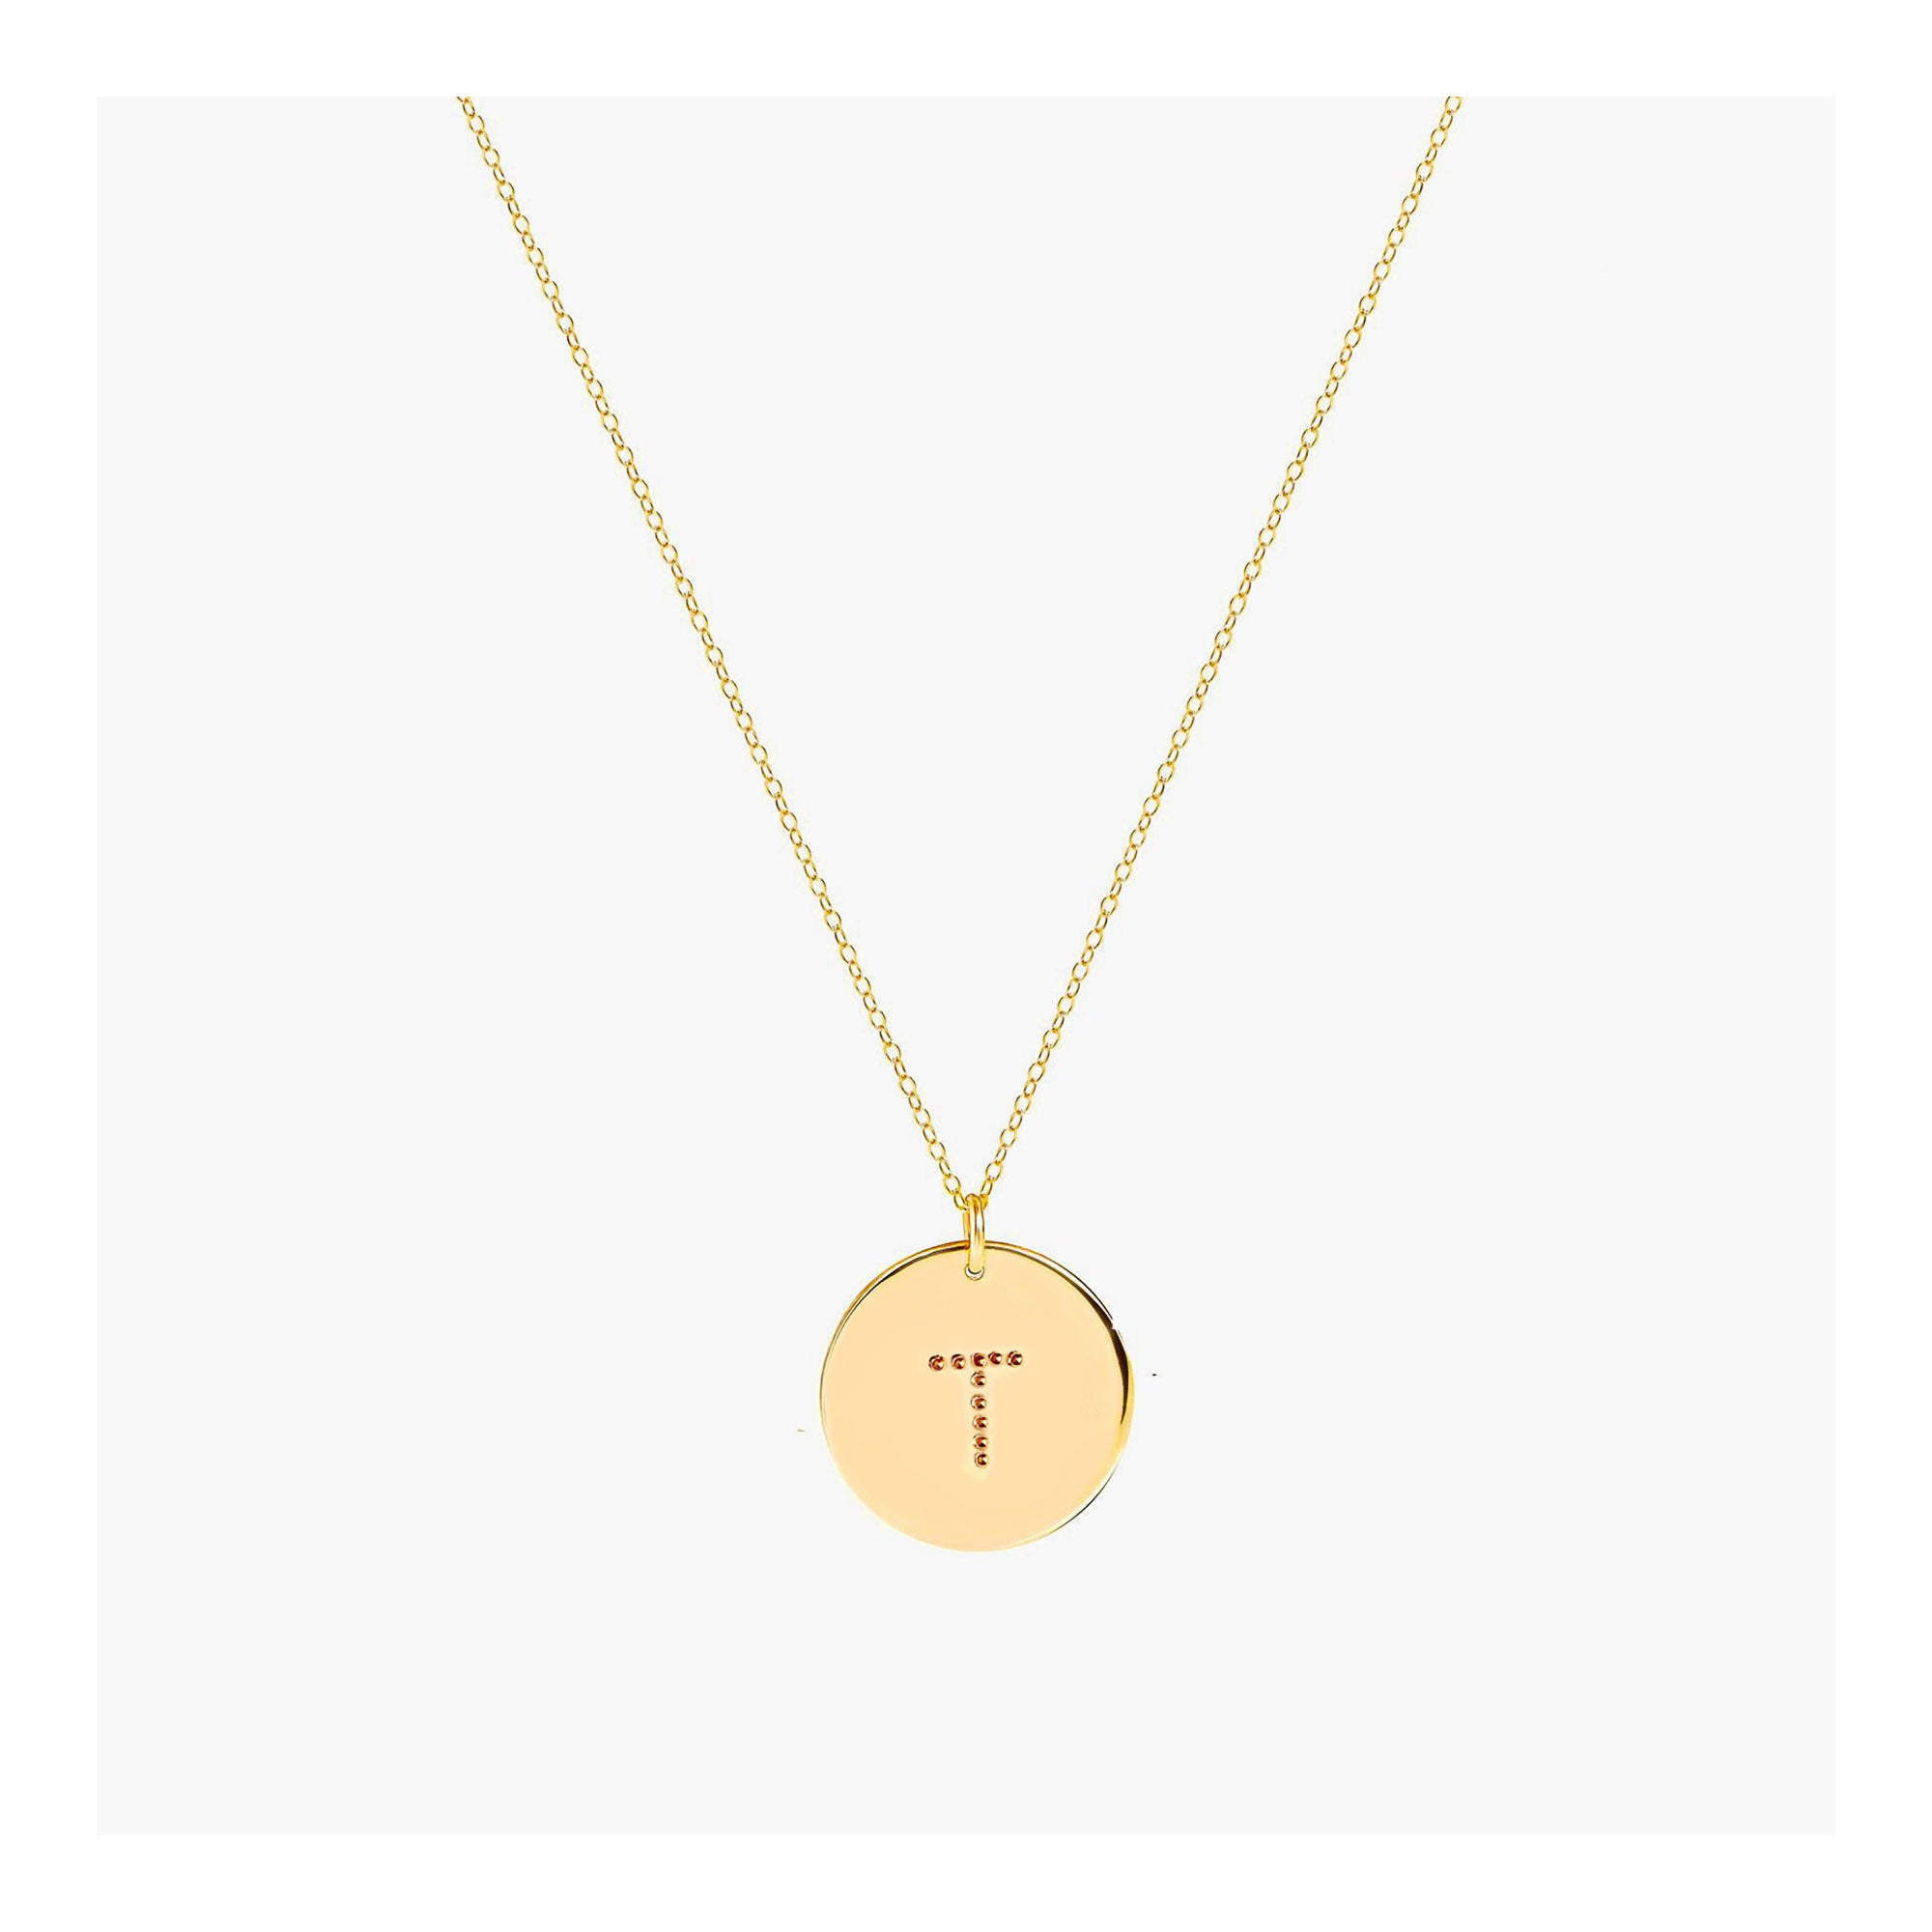 Personalized initial disc necklace with dot font